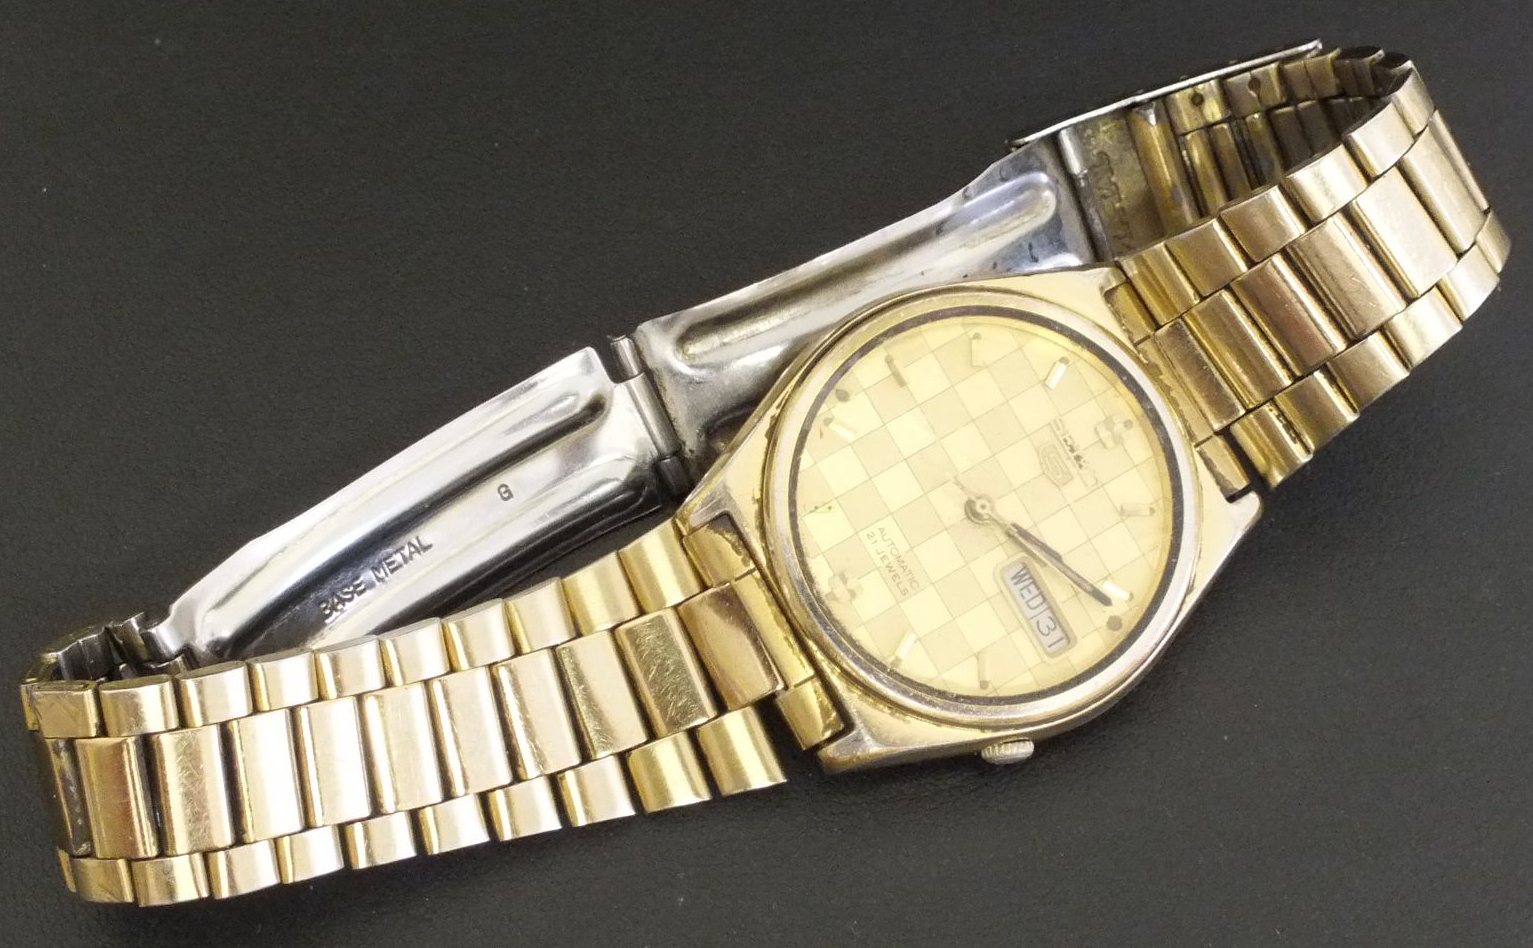 SEIKO 7019-8180 Gold effect for project or parts